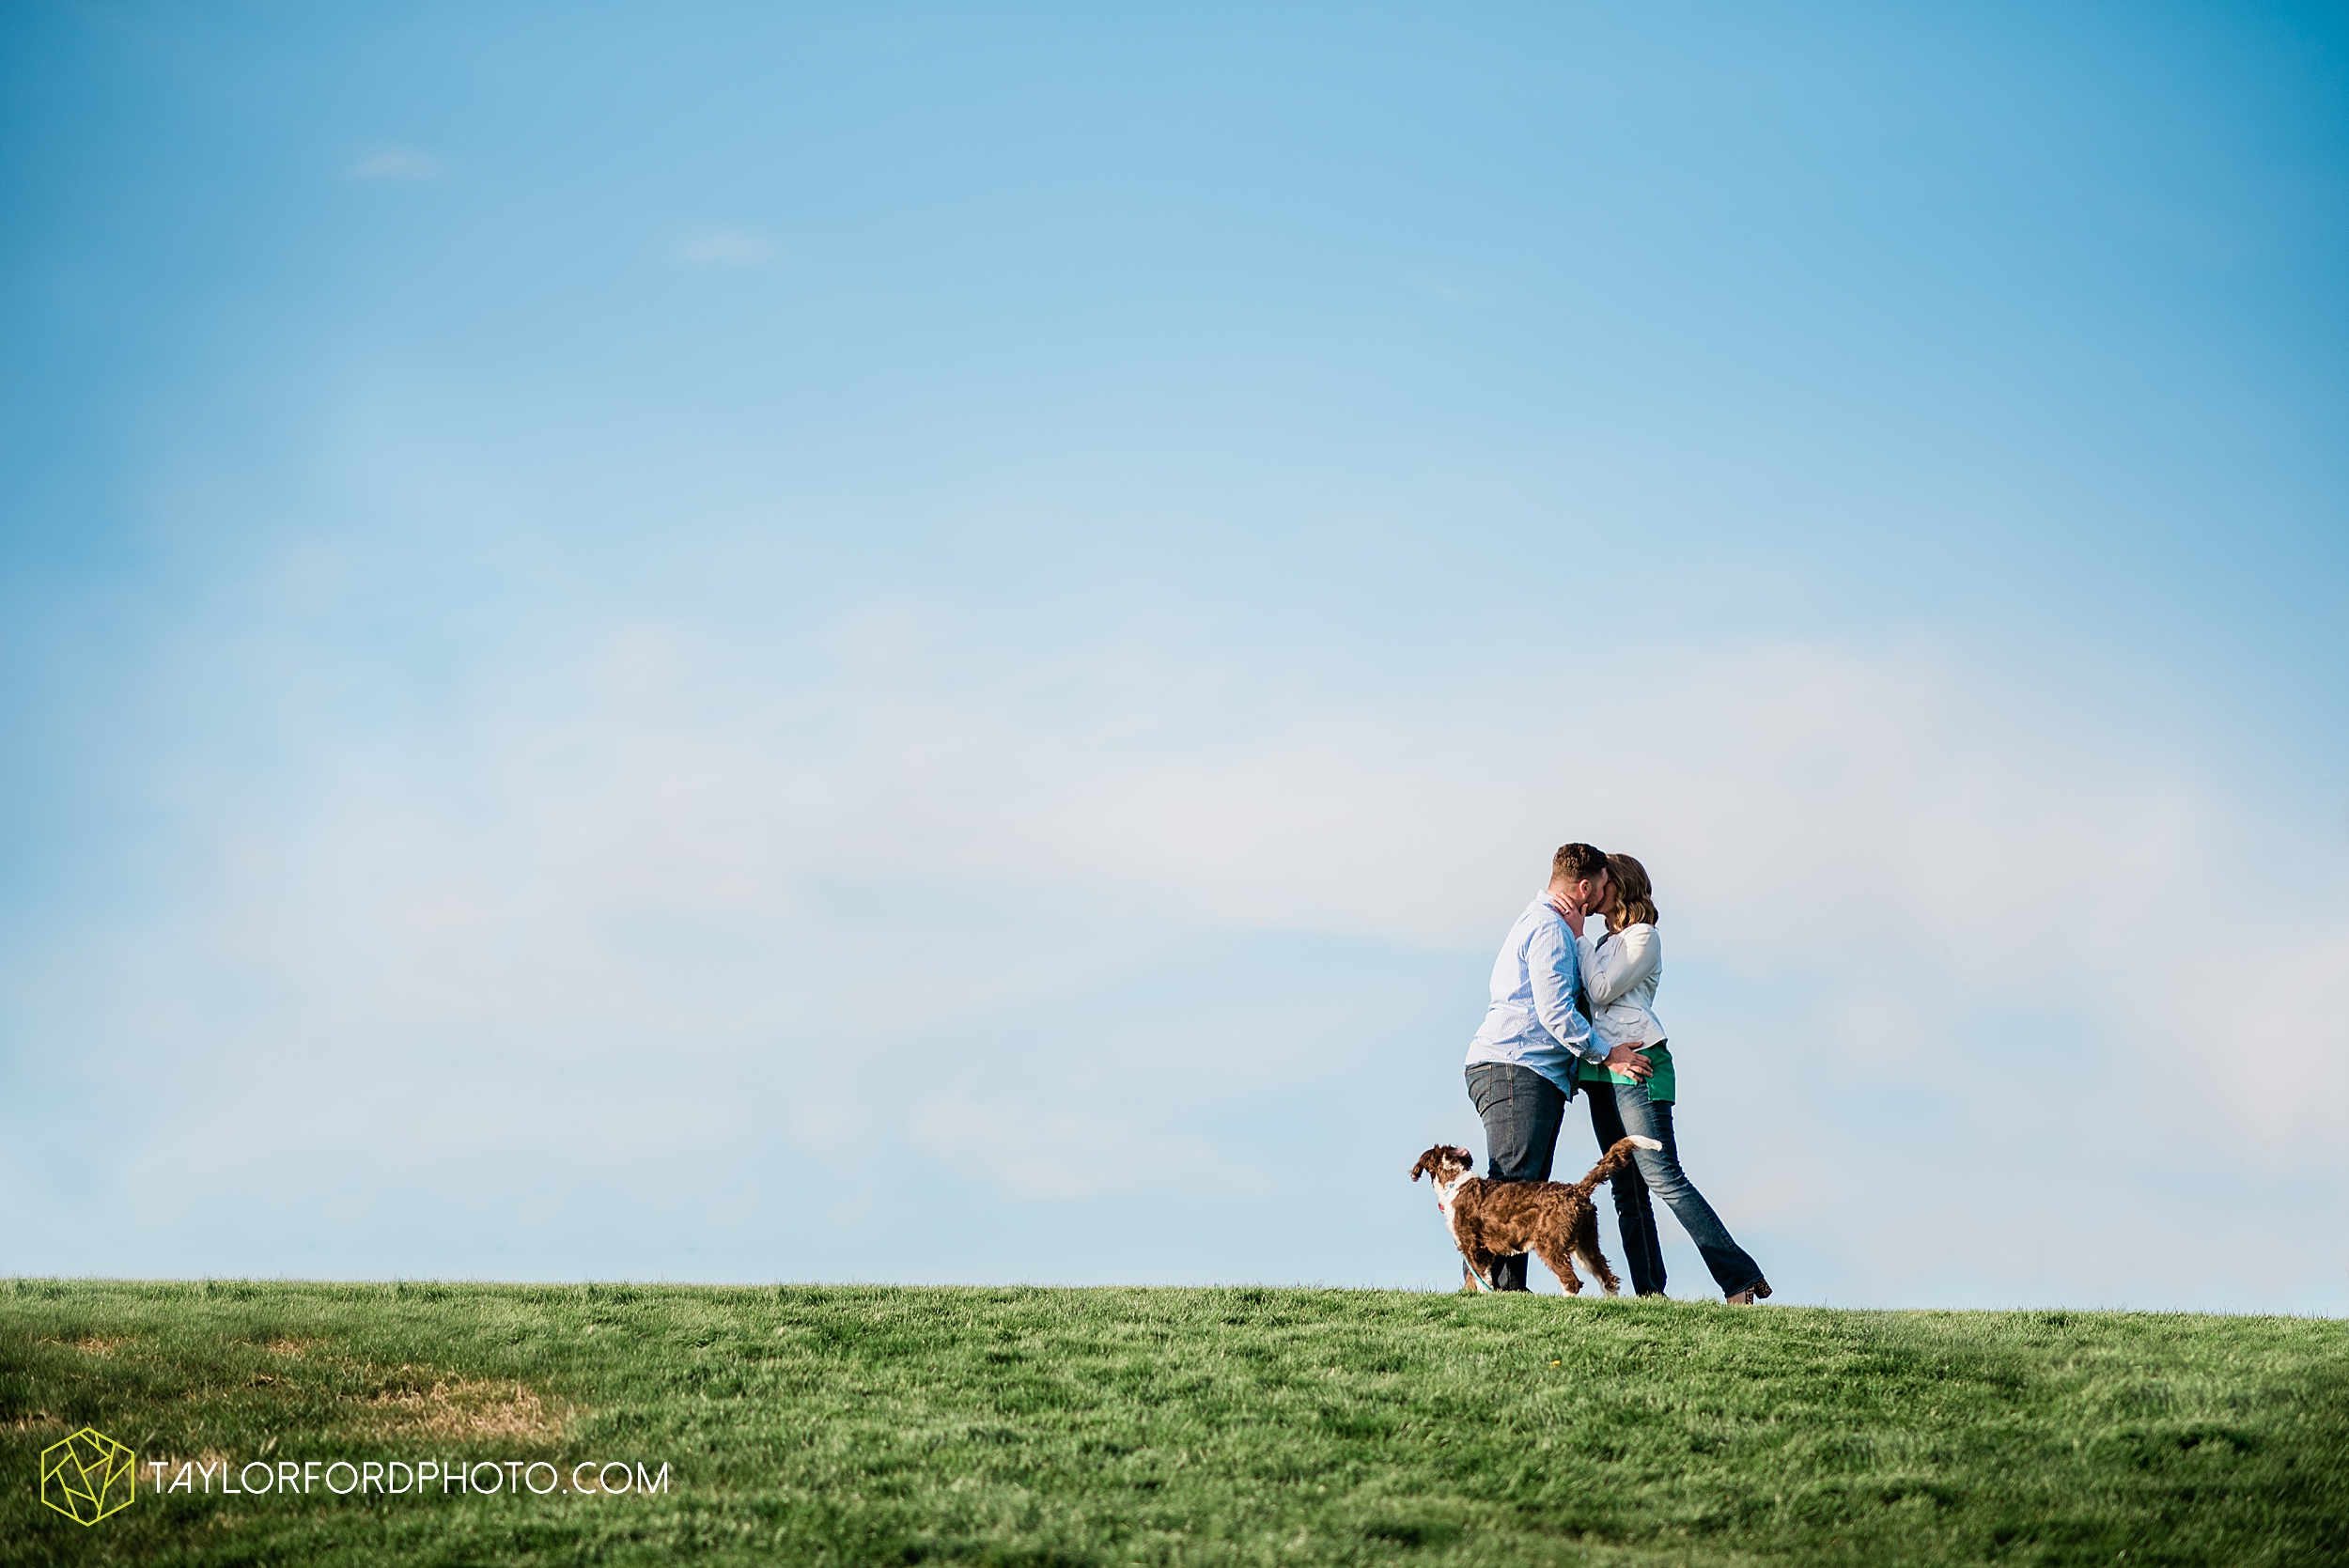 holland-michigan-tulip-time-downtown-hope-college-riverside-park-laketown-beach-lake-michigan-engagement-photographer-photography-taylor-ford-hirschy-photographer_2613.jpg